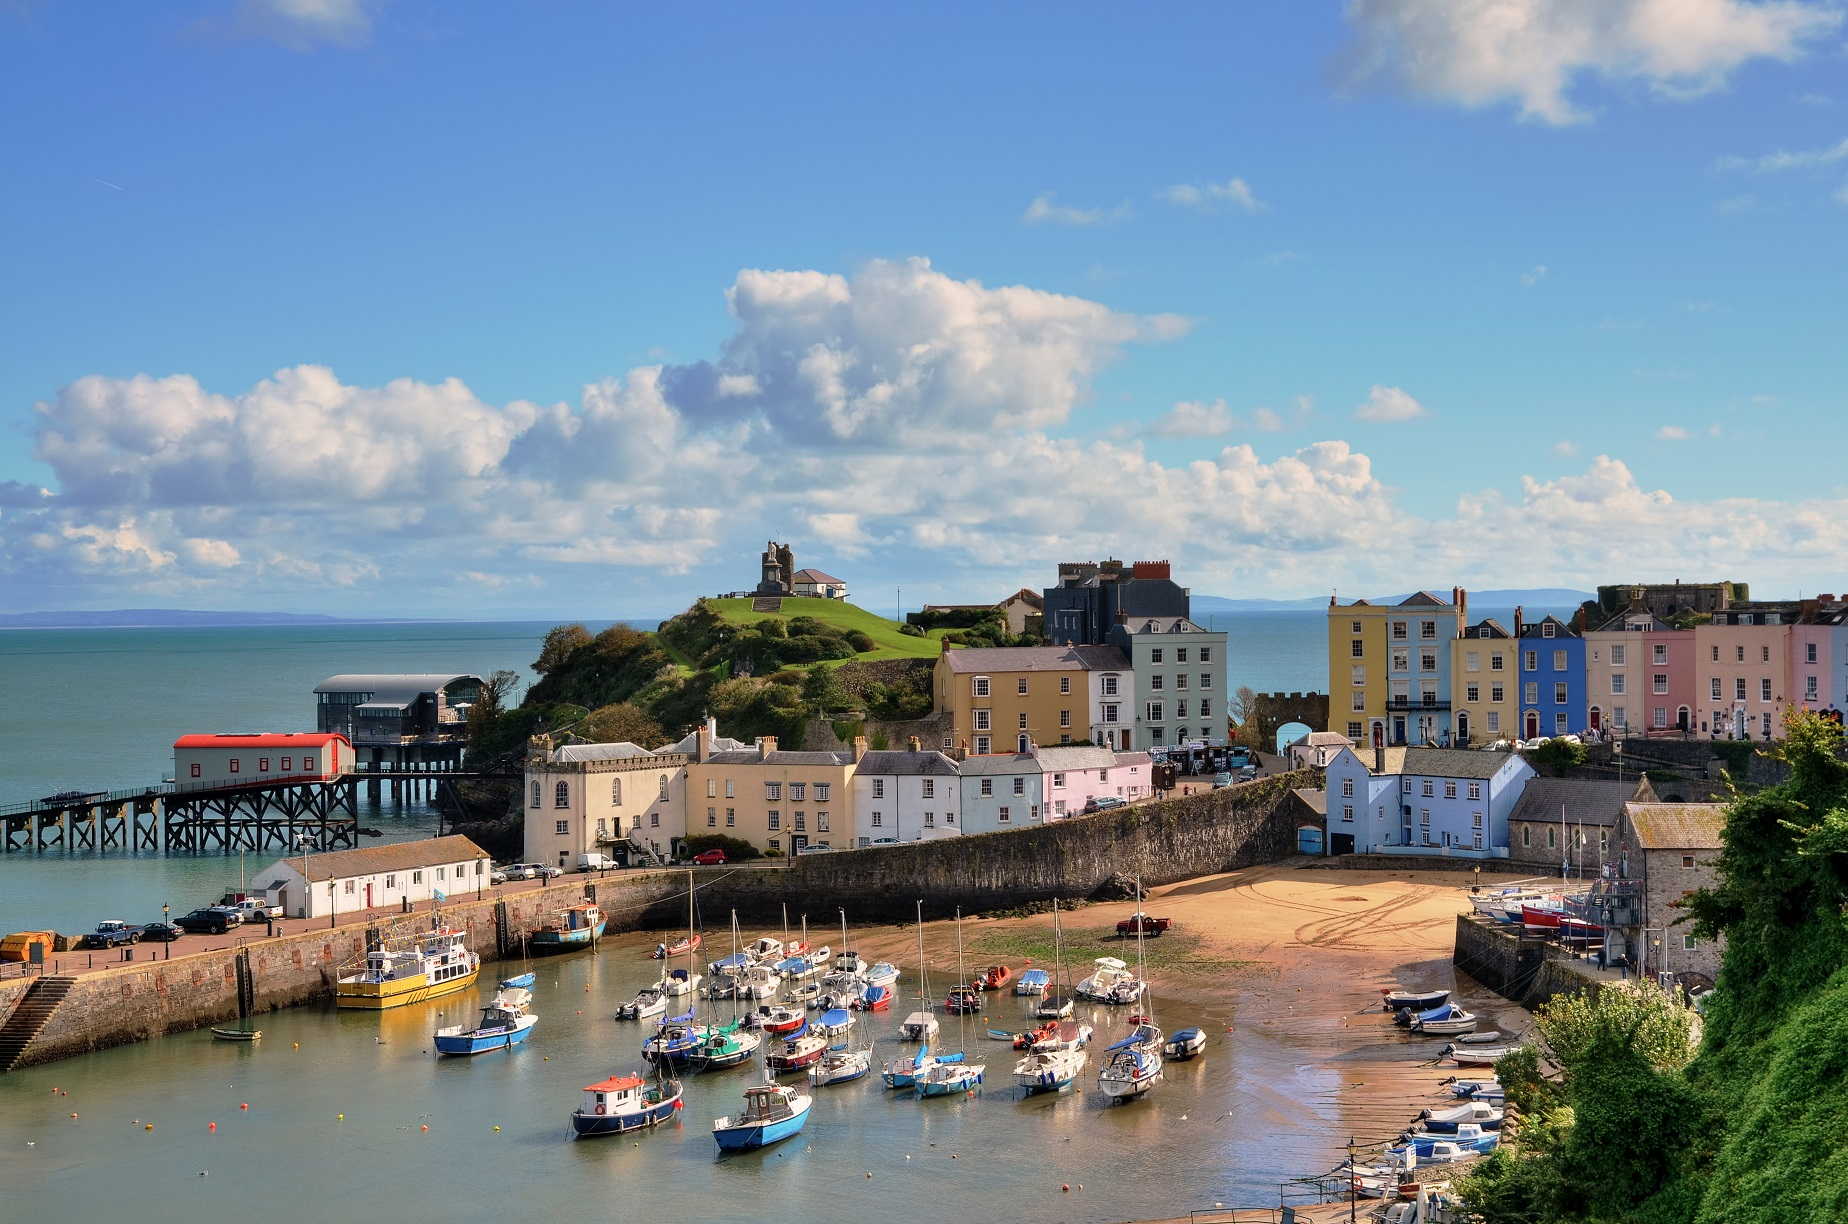 Exploring a millennium of rich history in Tenby